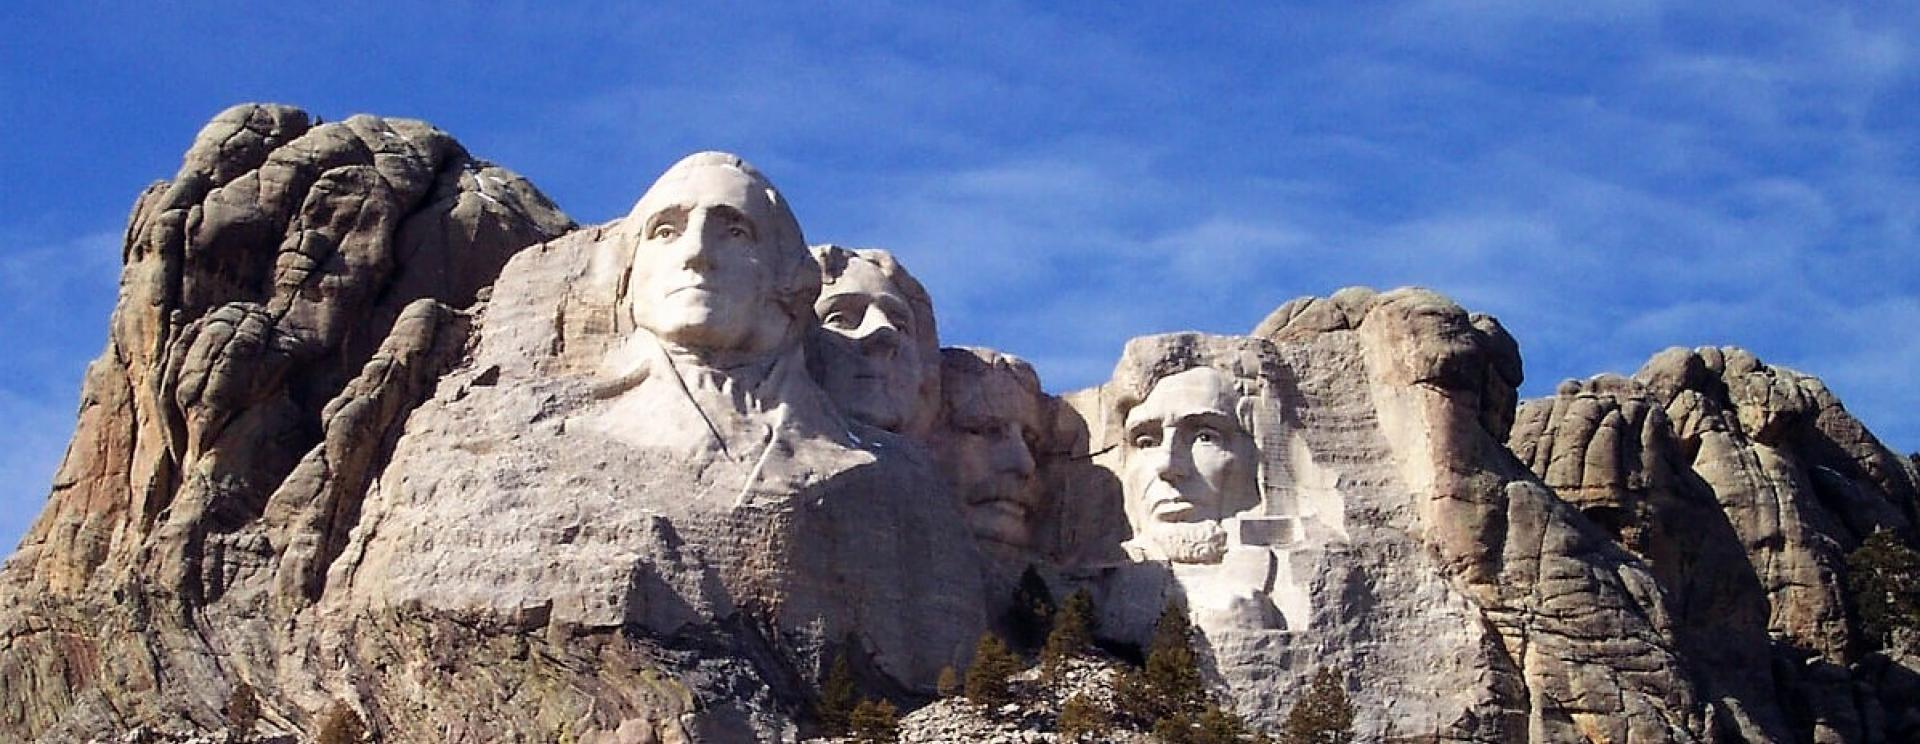 Mount Rushmore Concessions